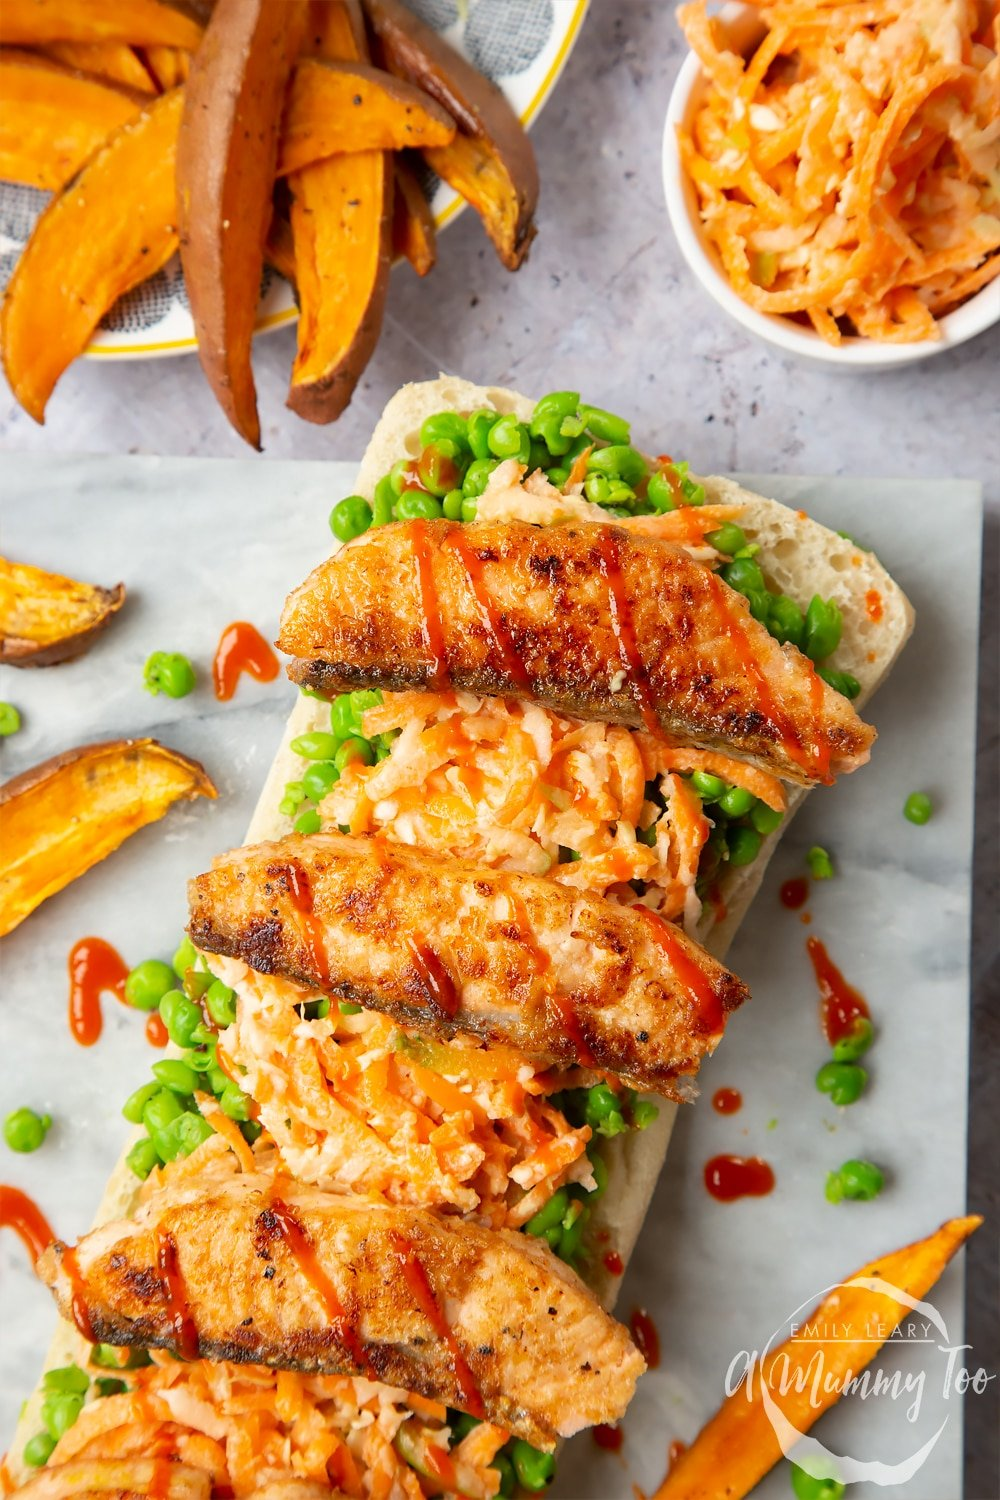 A healthier fish finger sarnie served with sweet potato wedges